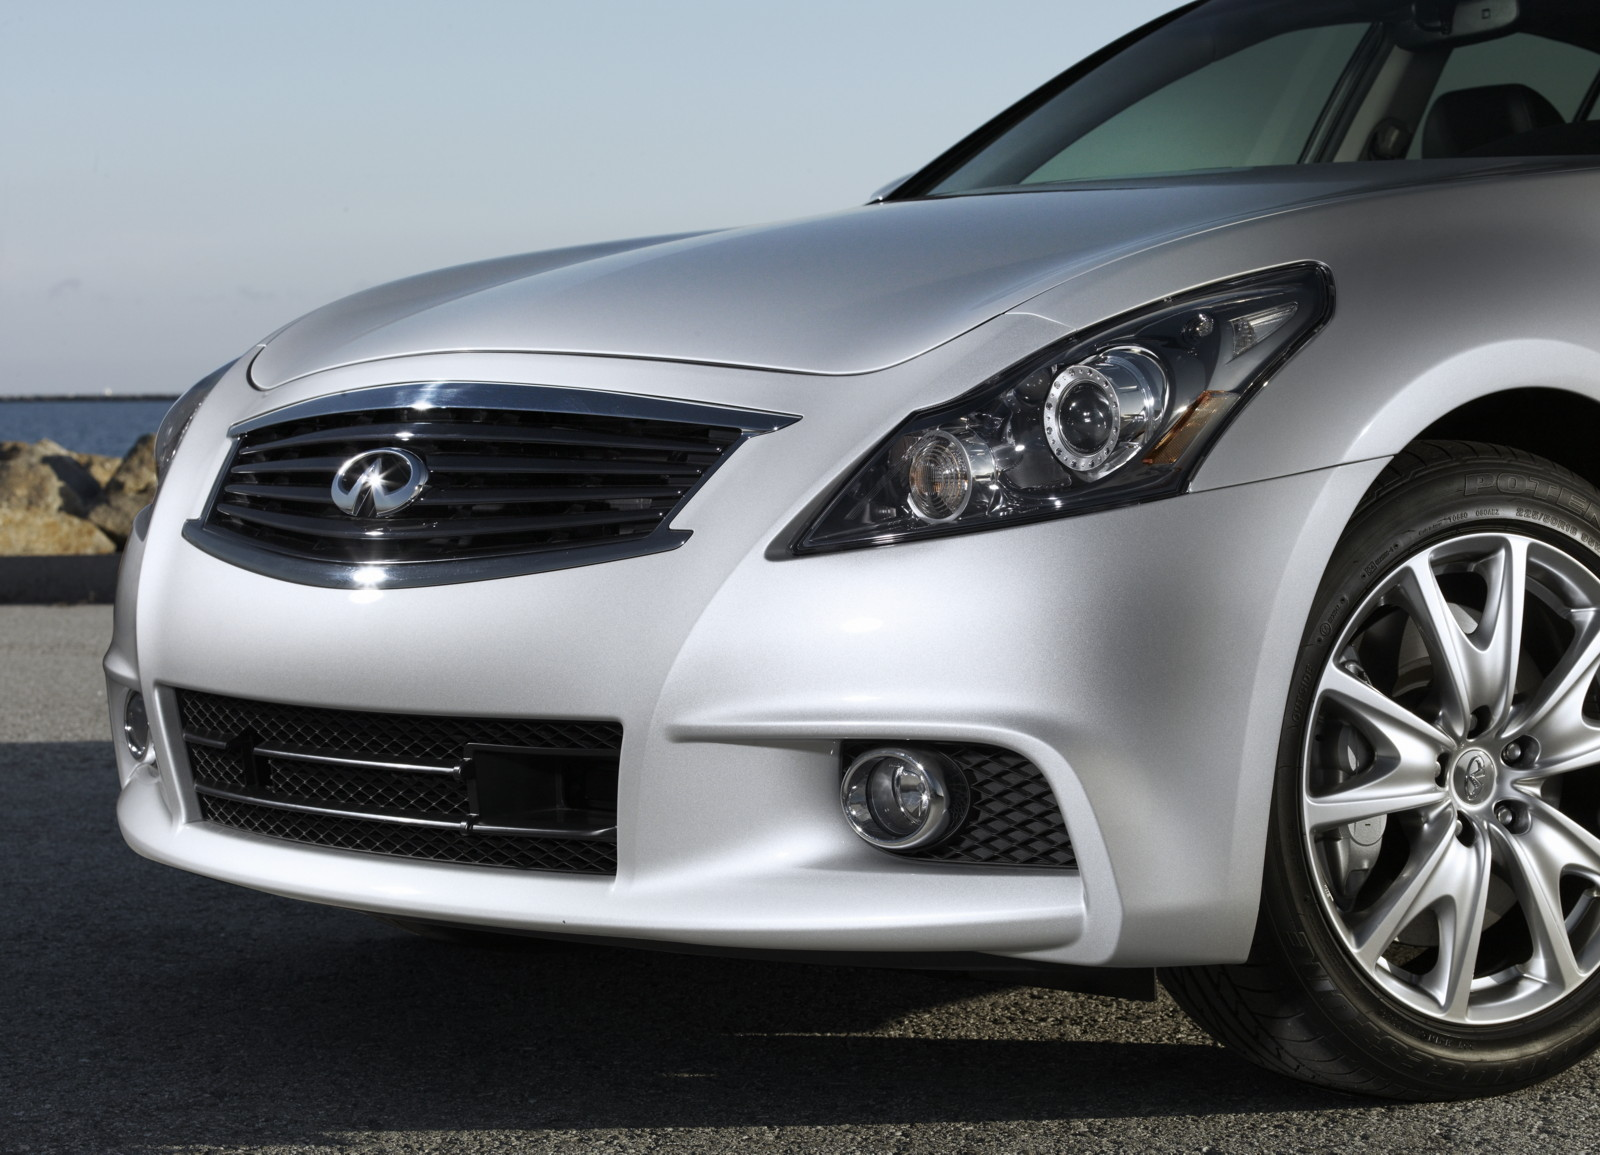 graphite l tools smart assistance infiniti price roadside build full shadow model m shopping ximg in infinity